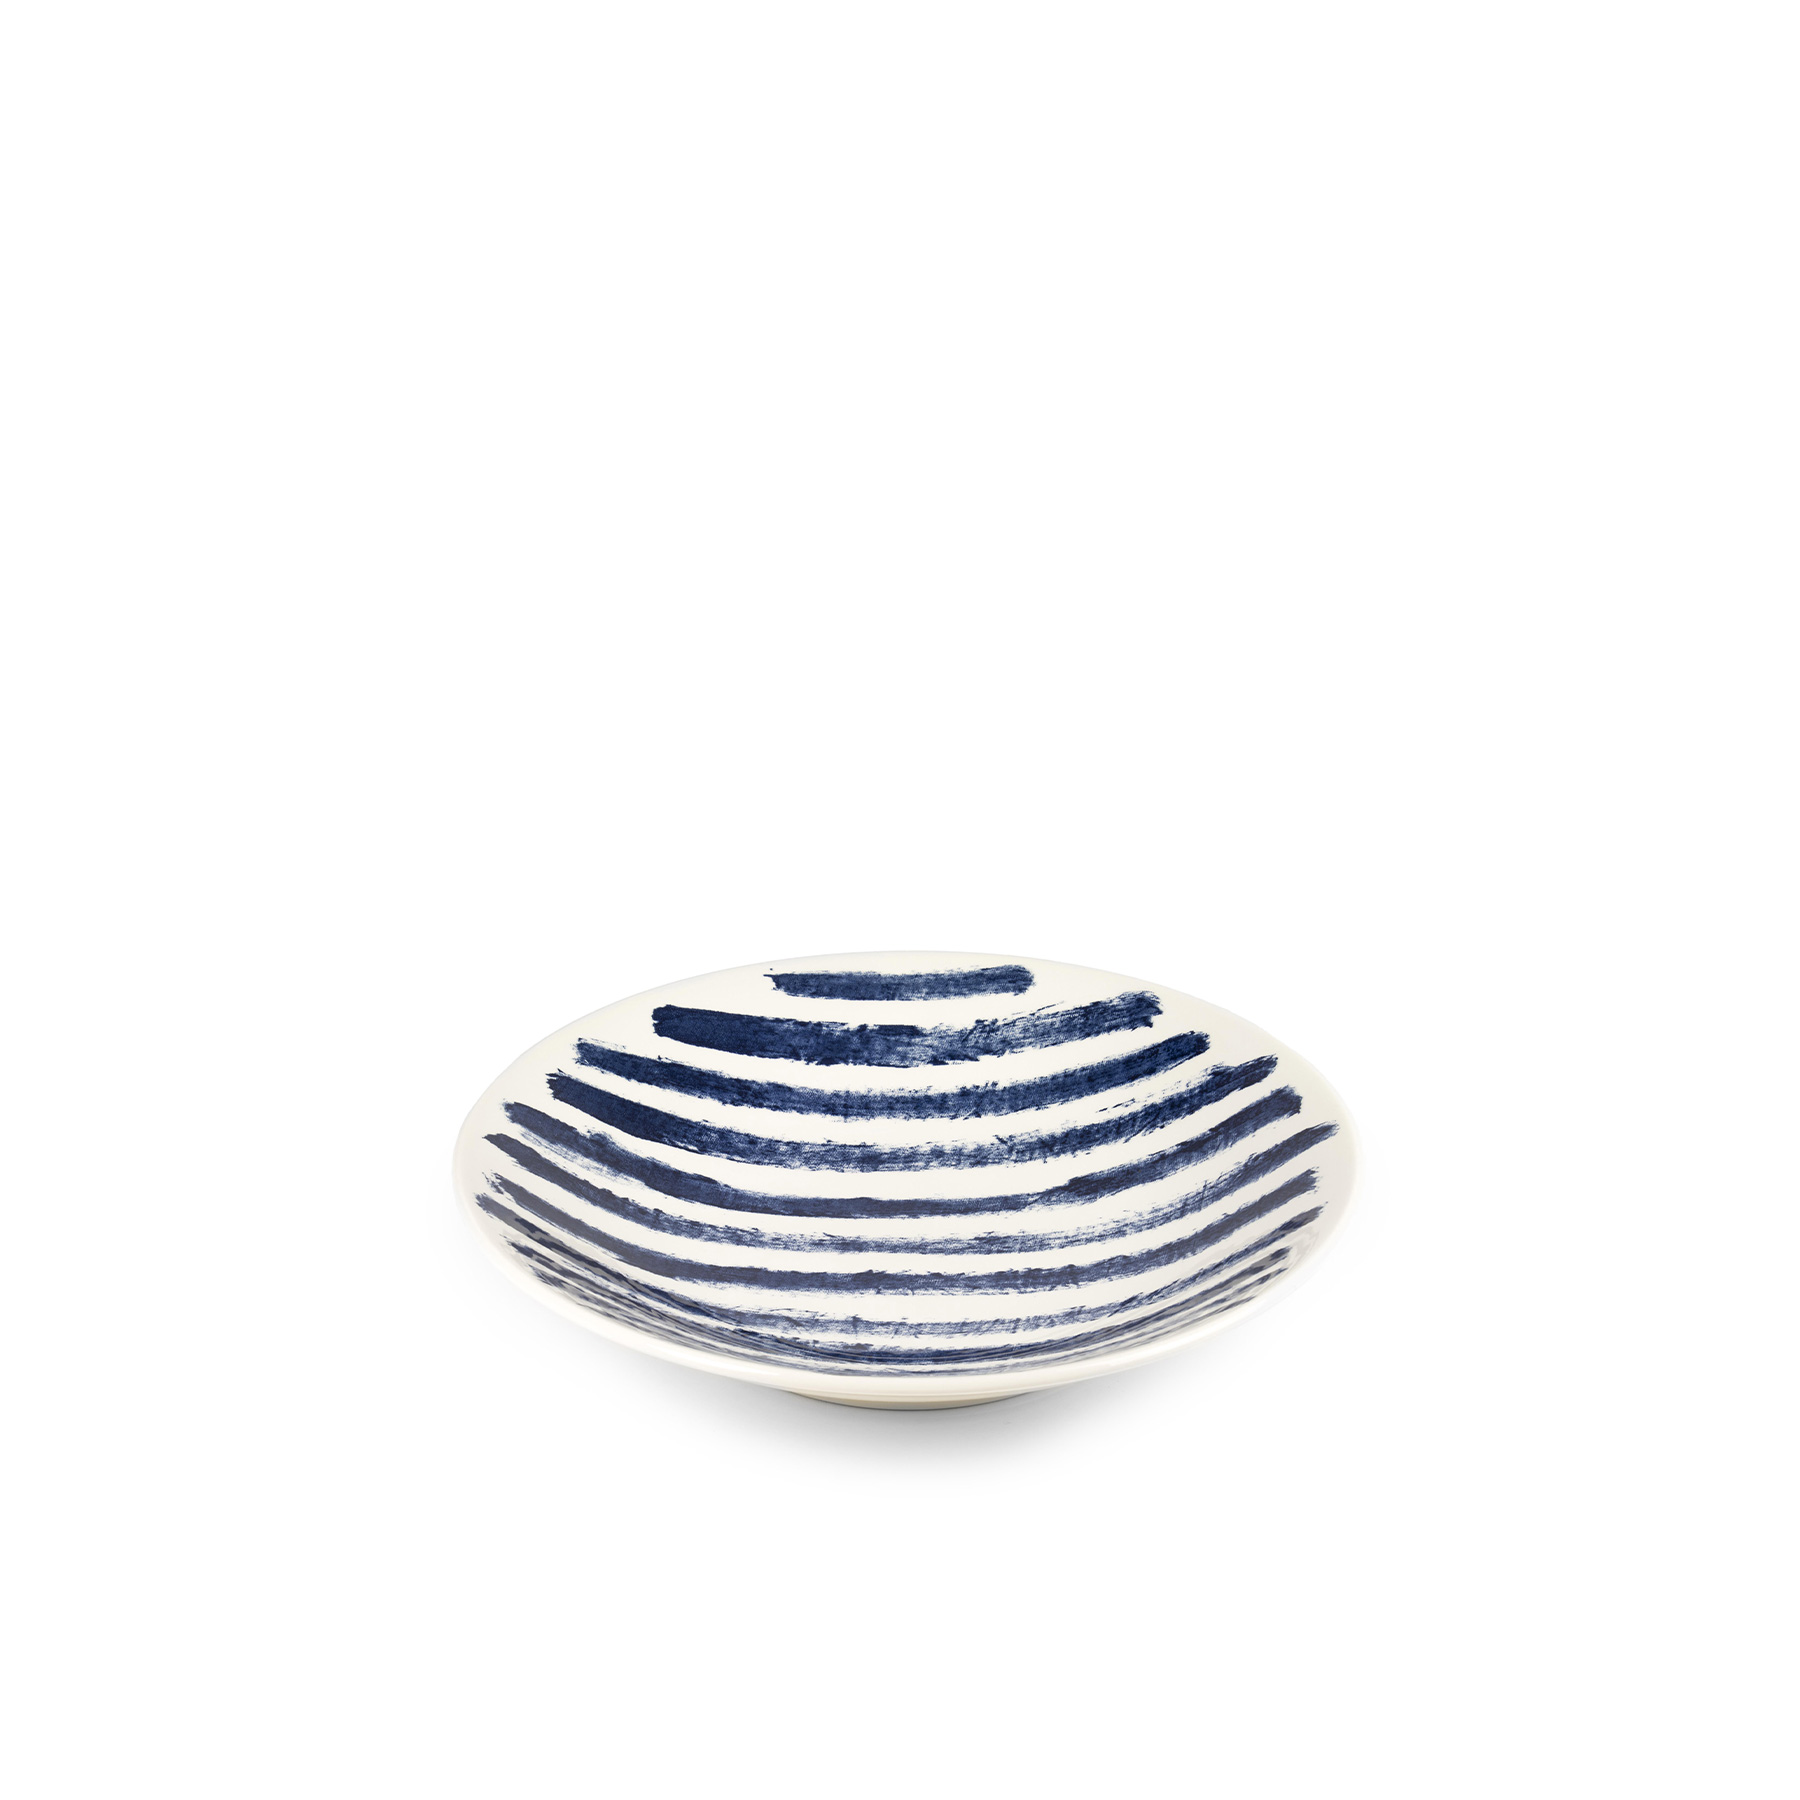 Indigo Rain Large Serving Bowl - Faye Toogood's addition to her range of ceramic designs for 1882 Ltd. puts a fresh spin on the forms and traditions of English creamware. Indigo Rain reinterprets the homely familiarity of blue-and-white striped crockery in a new design informed by the spirit of serendipitous discovery. Representing a streamlined take on our ceramic heritage, the fine earthenware employs the familiar tones of English Delftware: cream offset with a rich, deep blue. Broad bands of indigo glaze, like painterly washes of watercolour, are applied to rough canvas and then transferred to the pieces – the characteristic grain of the fabric imbues the delicate ceramics with the hardworking spirit of dark-dyed denim.  | Matter of Stuff